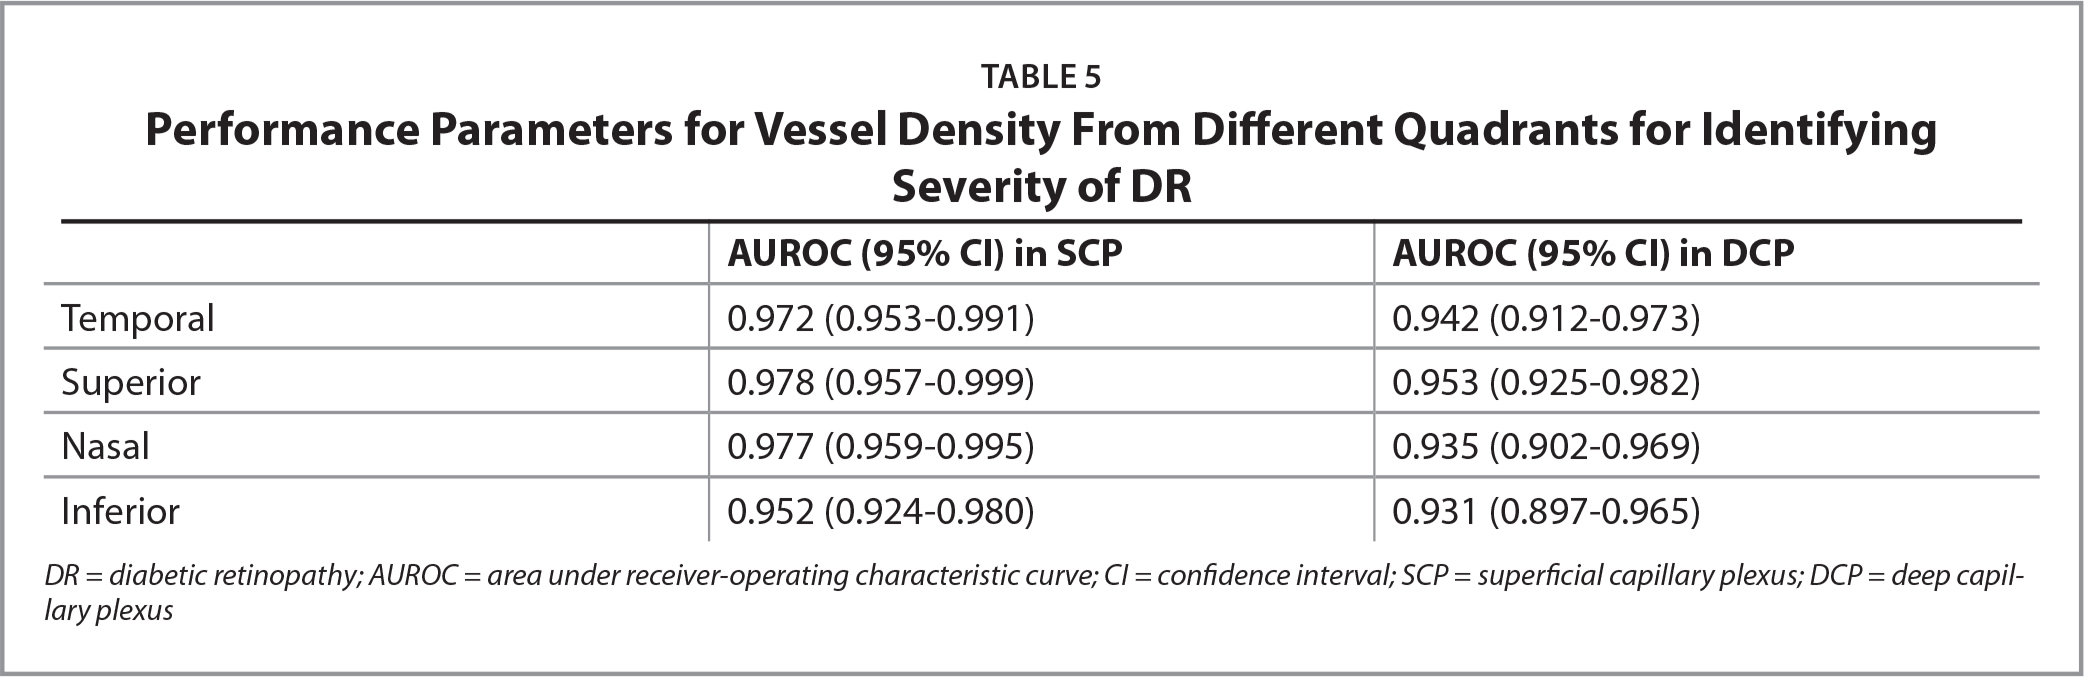 Performance Parameters for Vessel Density From Different Quadrants for Identifying Severity of DR